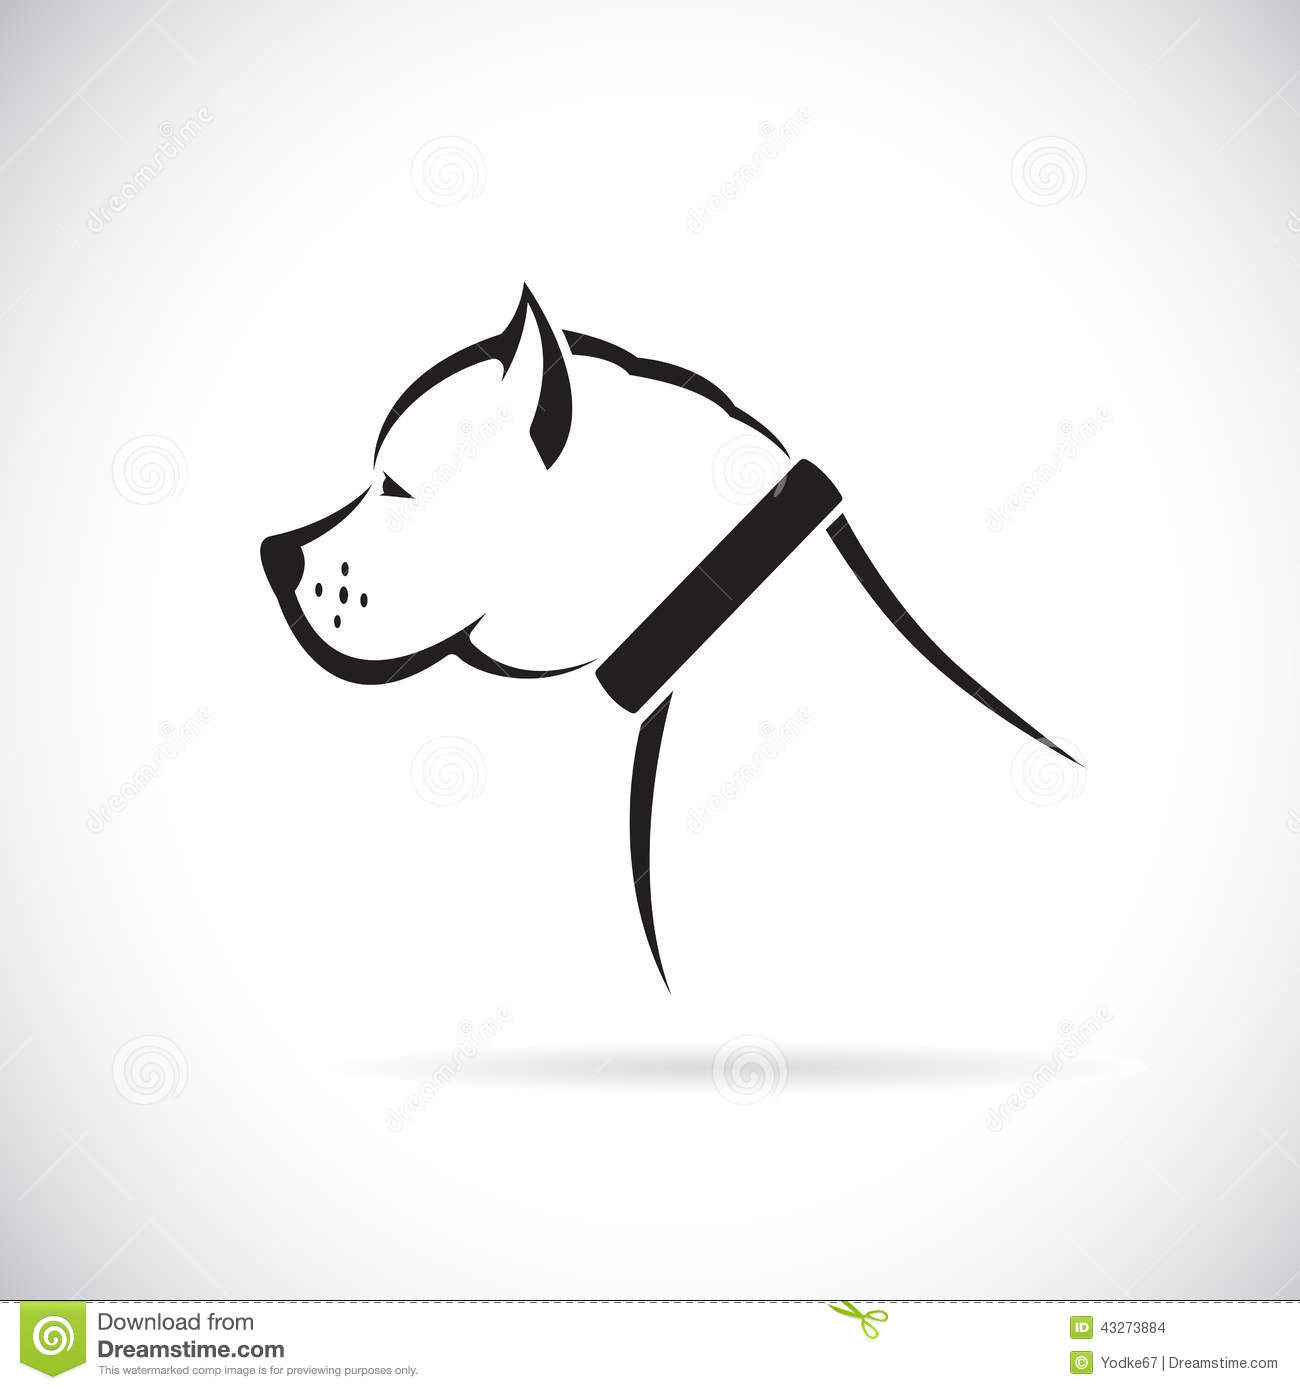 Vector Images Of Pitbull Dog Stock Vector - Image: 43273884 - photo#39